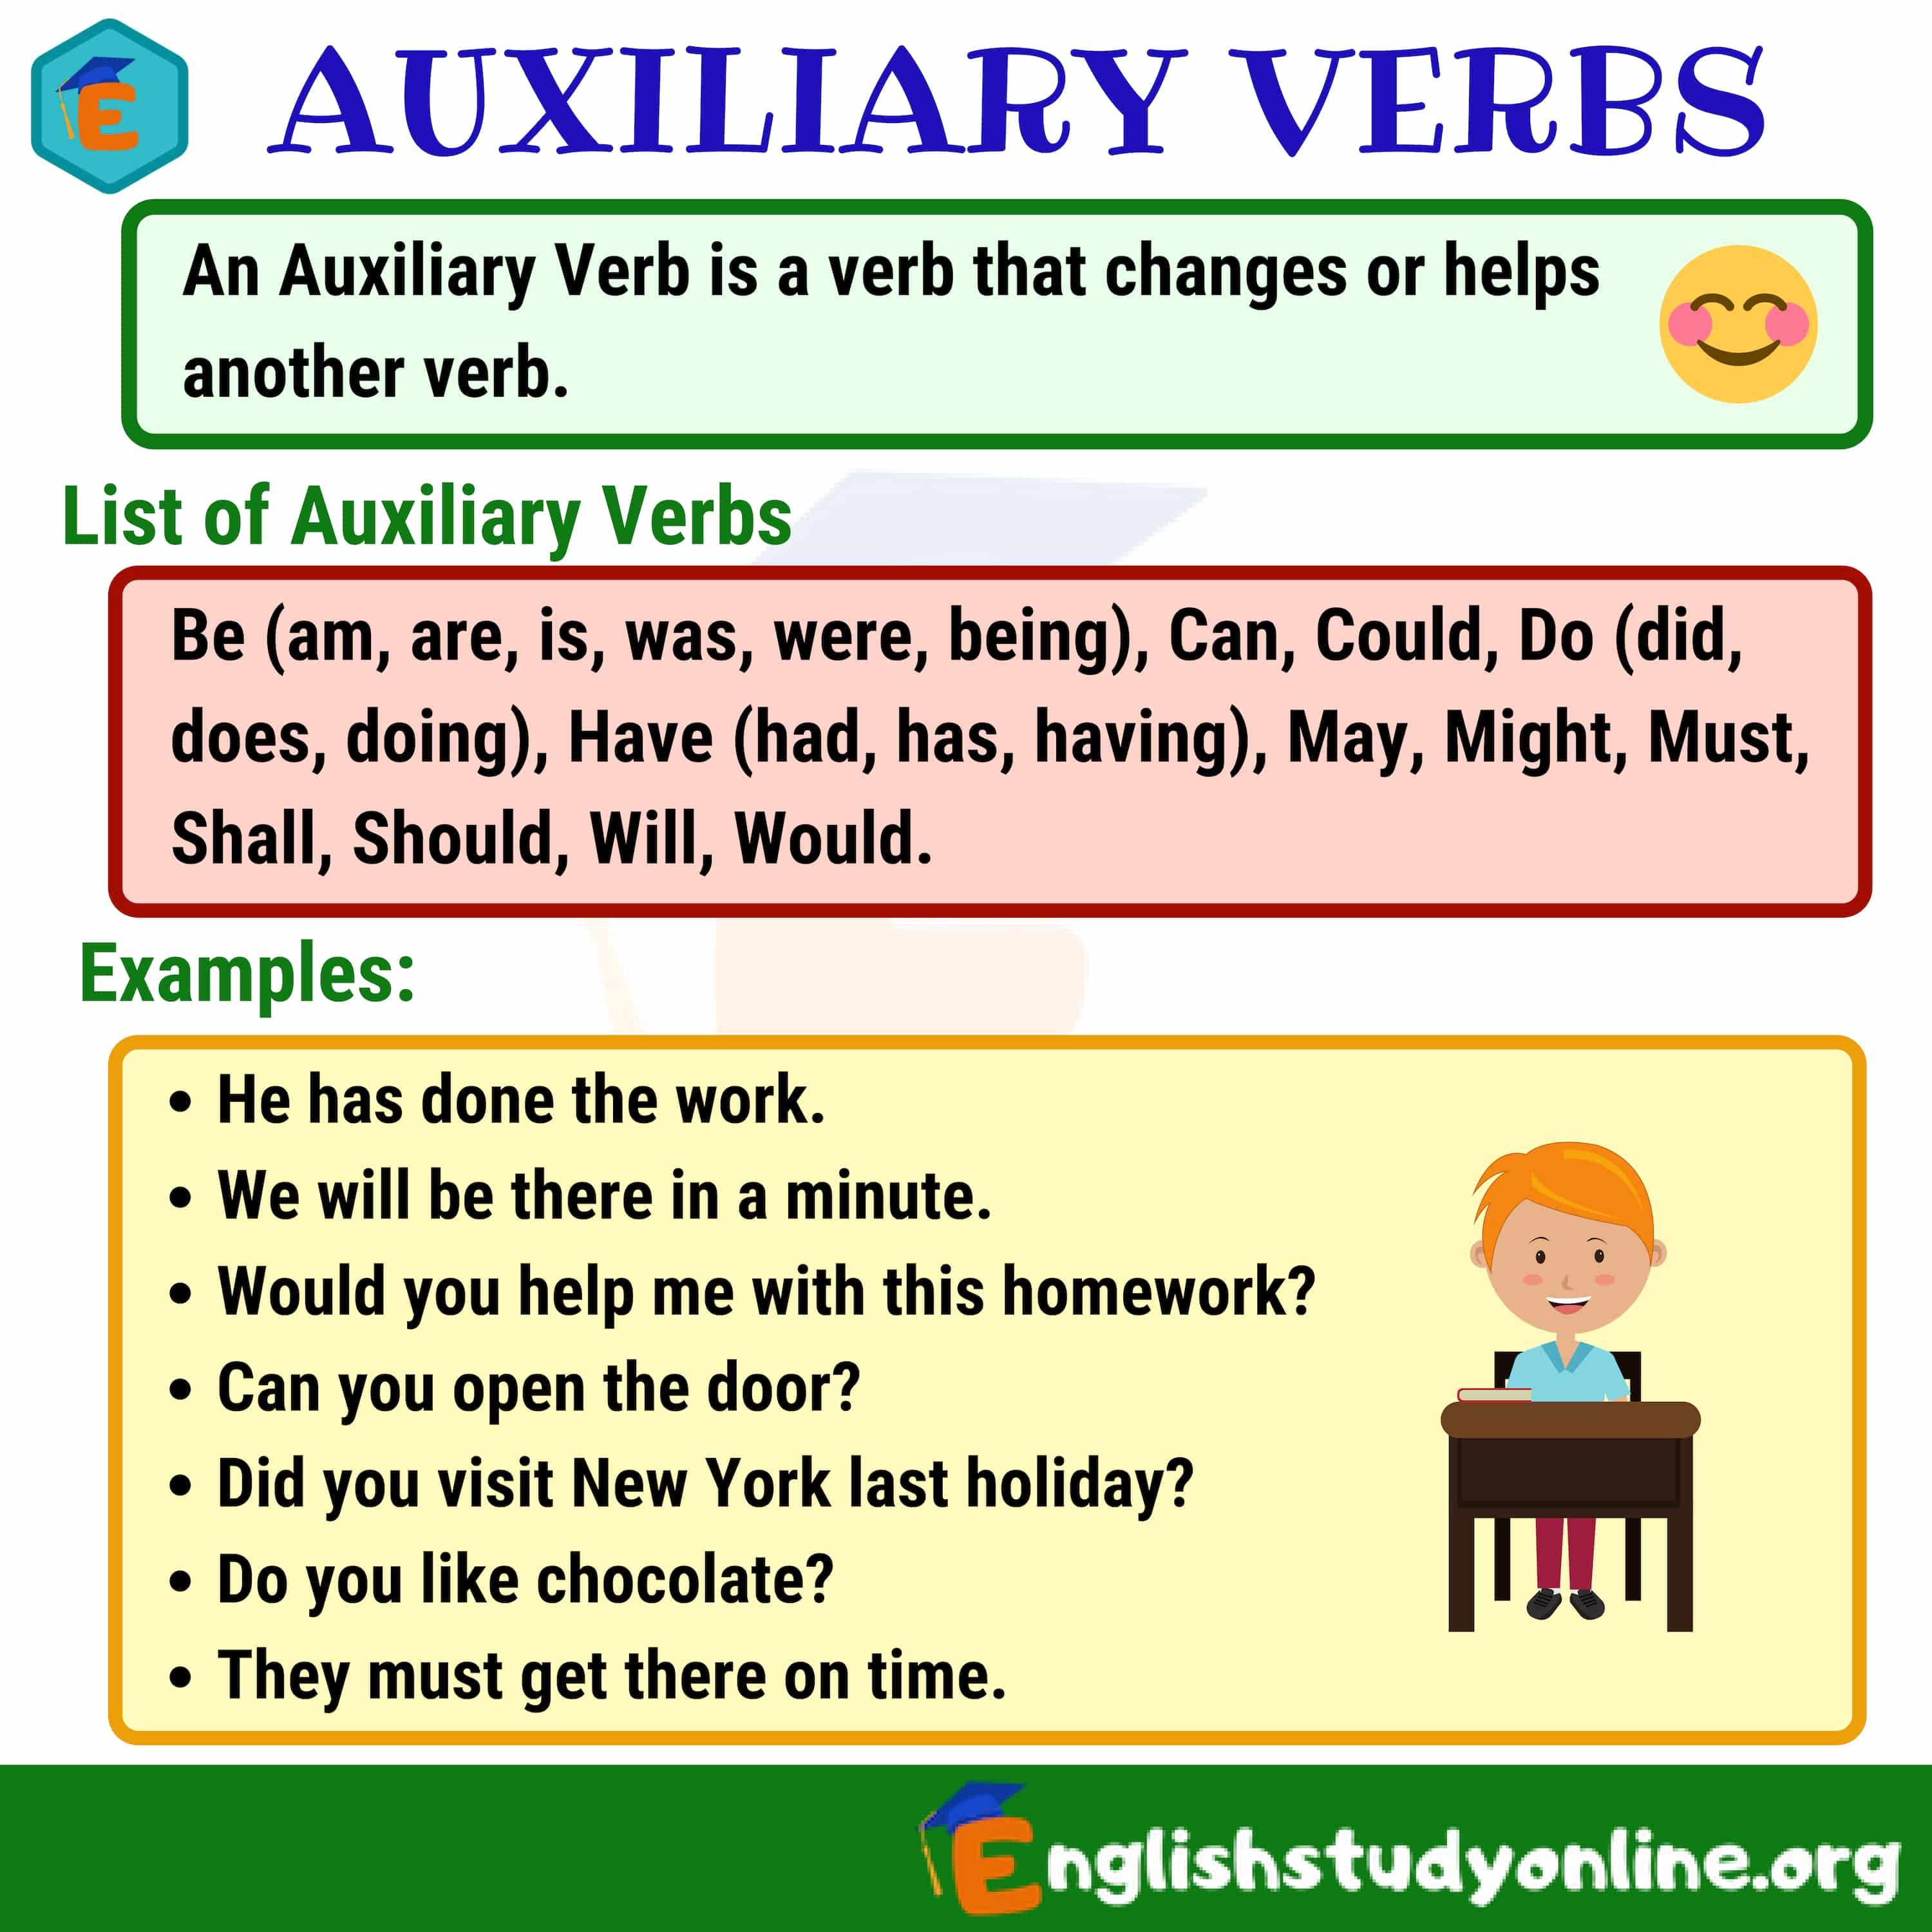 Auxiliary Verbs With Images